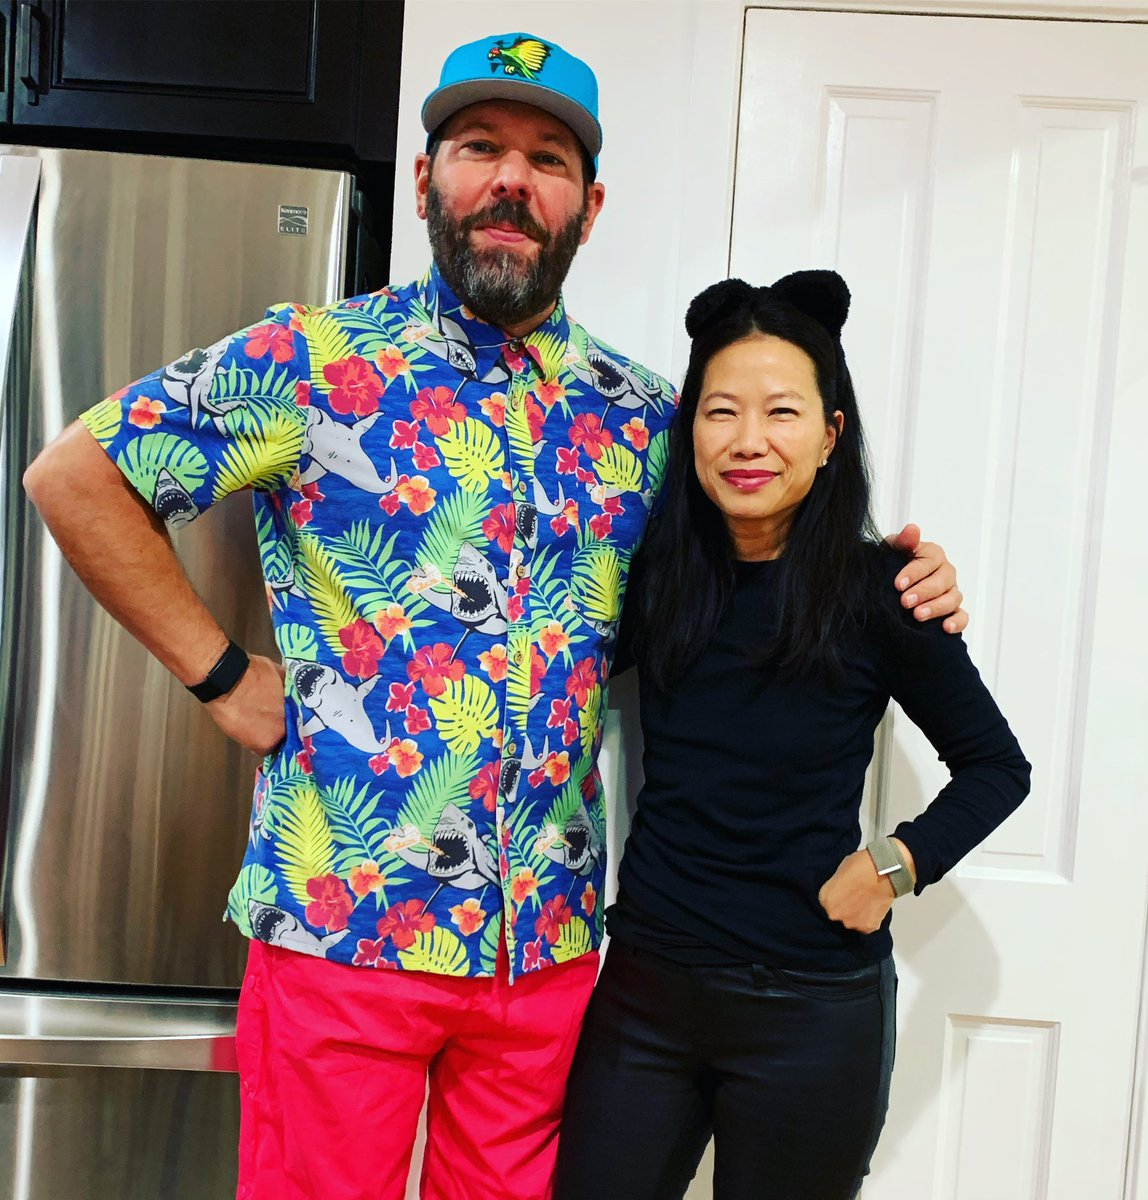 Bert Kreischer On Twitter I Got To Be Honest With You Leeann S Costume Was Amazing This Halloween Find the perfect bert kreischer stock photos and editorial news pictures from getty images. bert kreischer on twitter i got to be